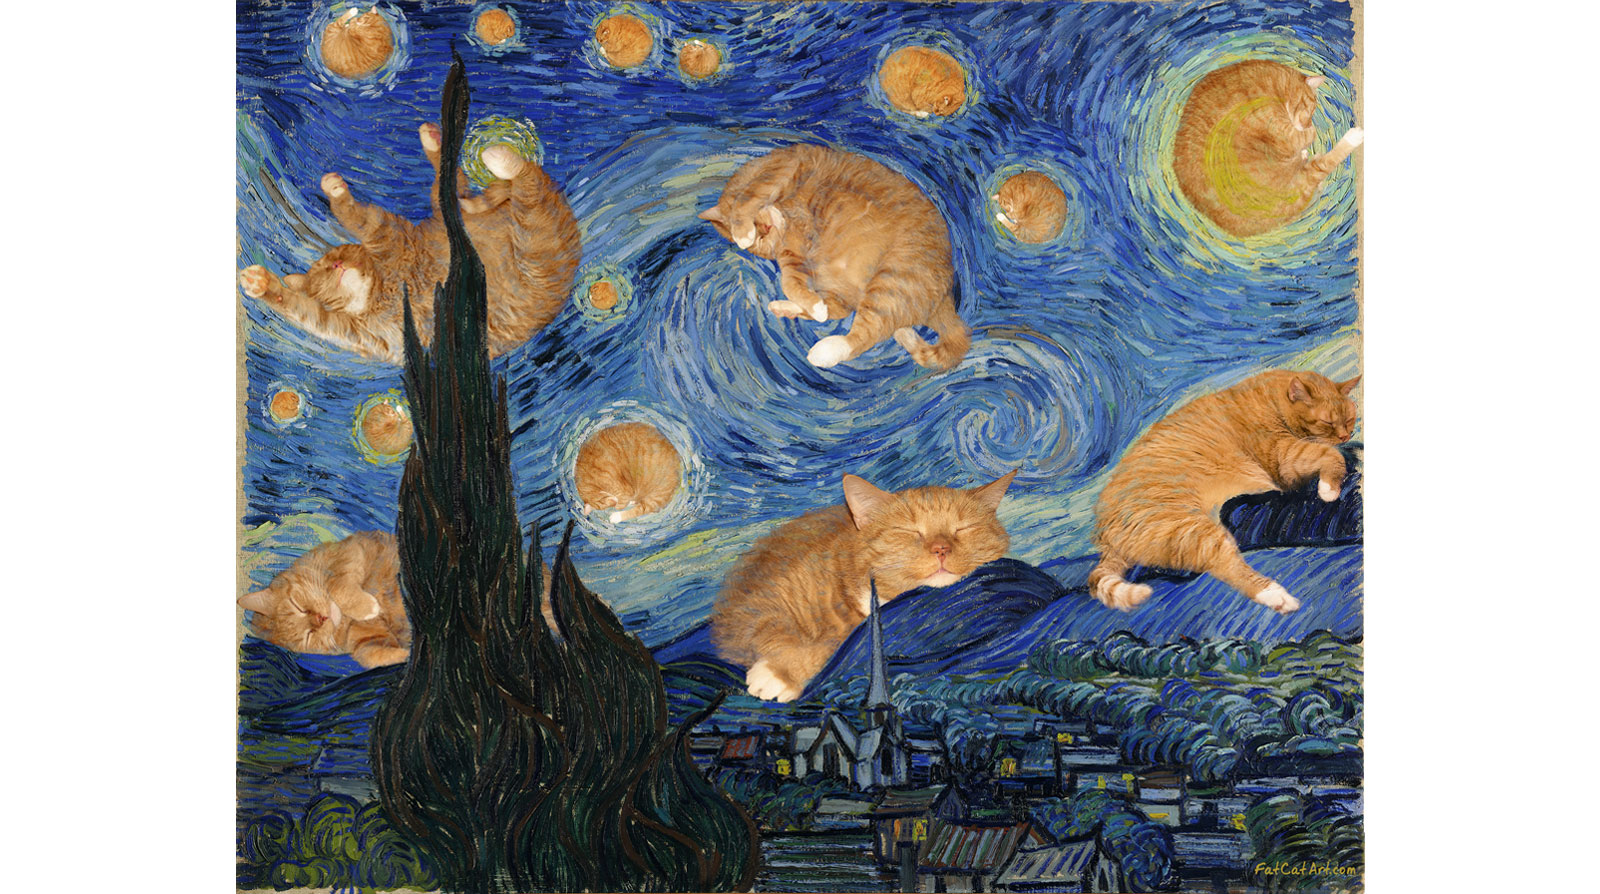 Vincent van Gogh. The Furry Starry Night